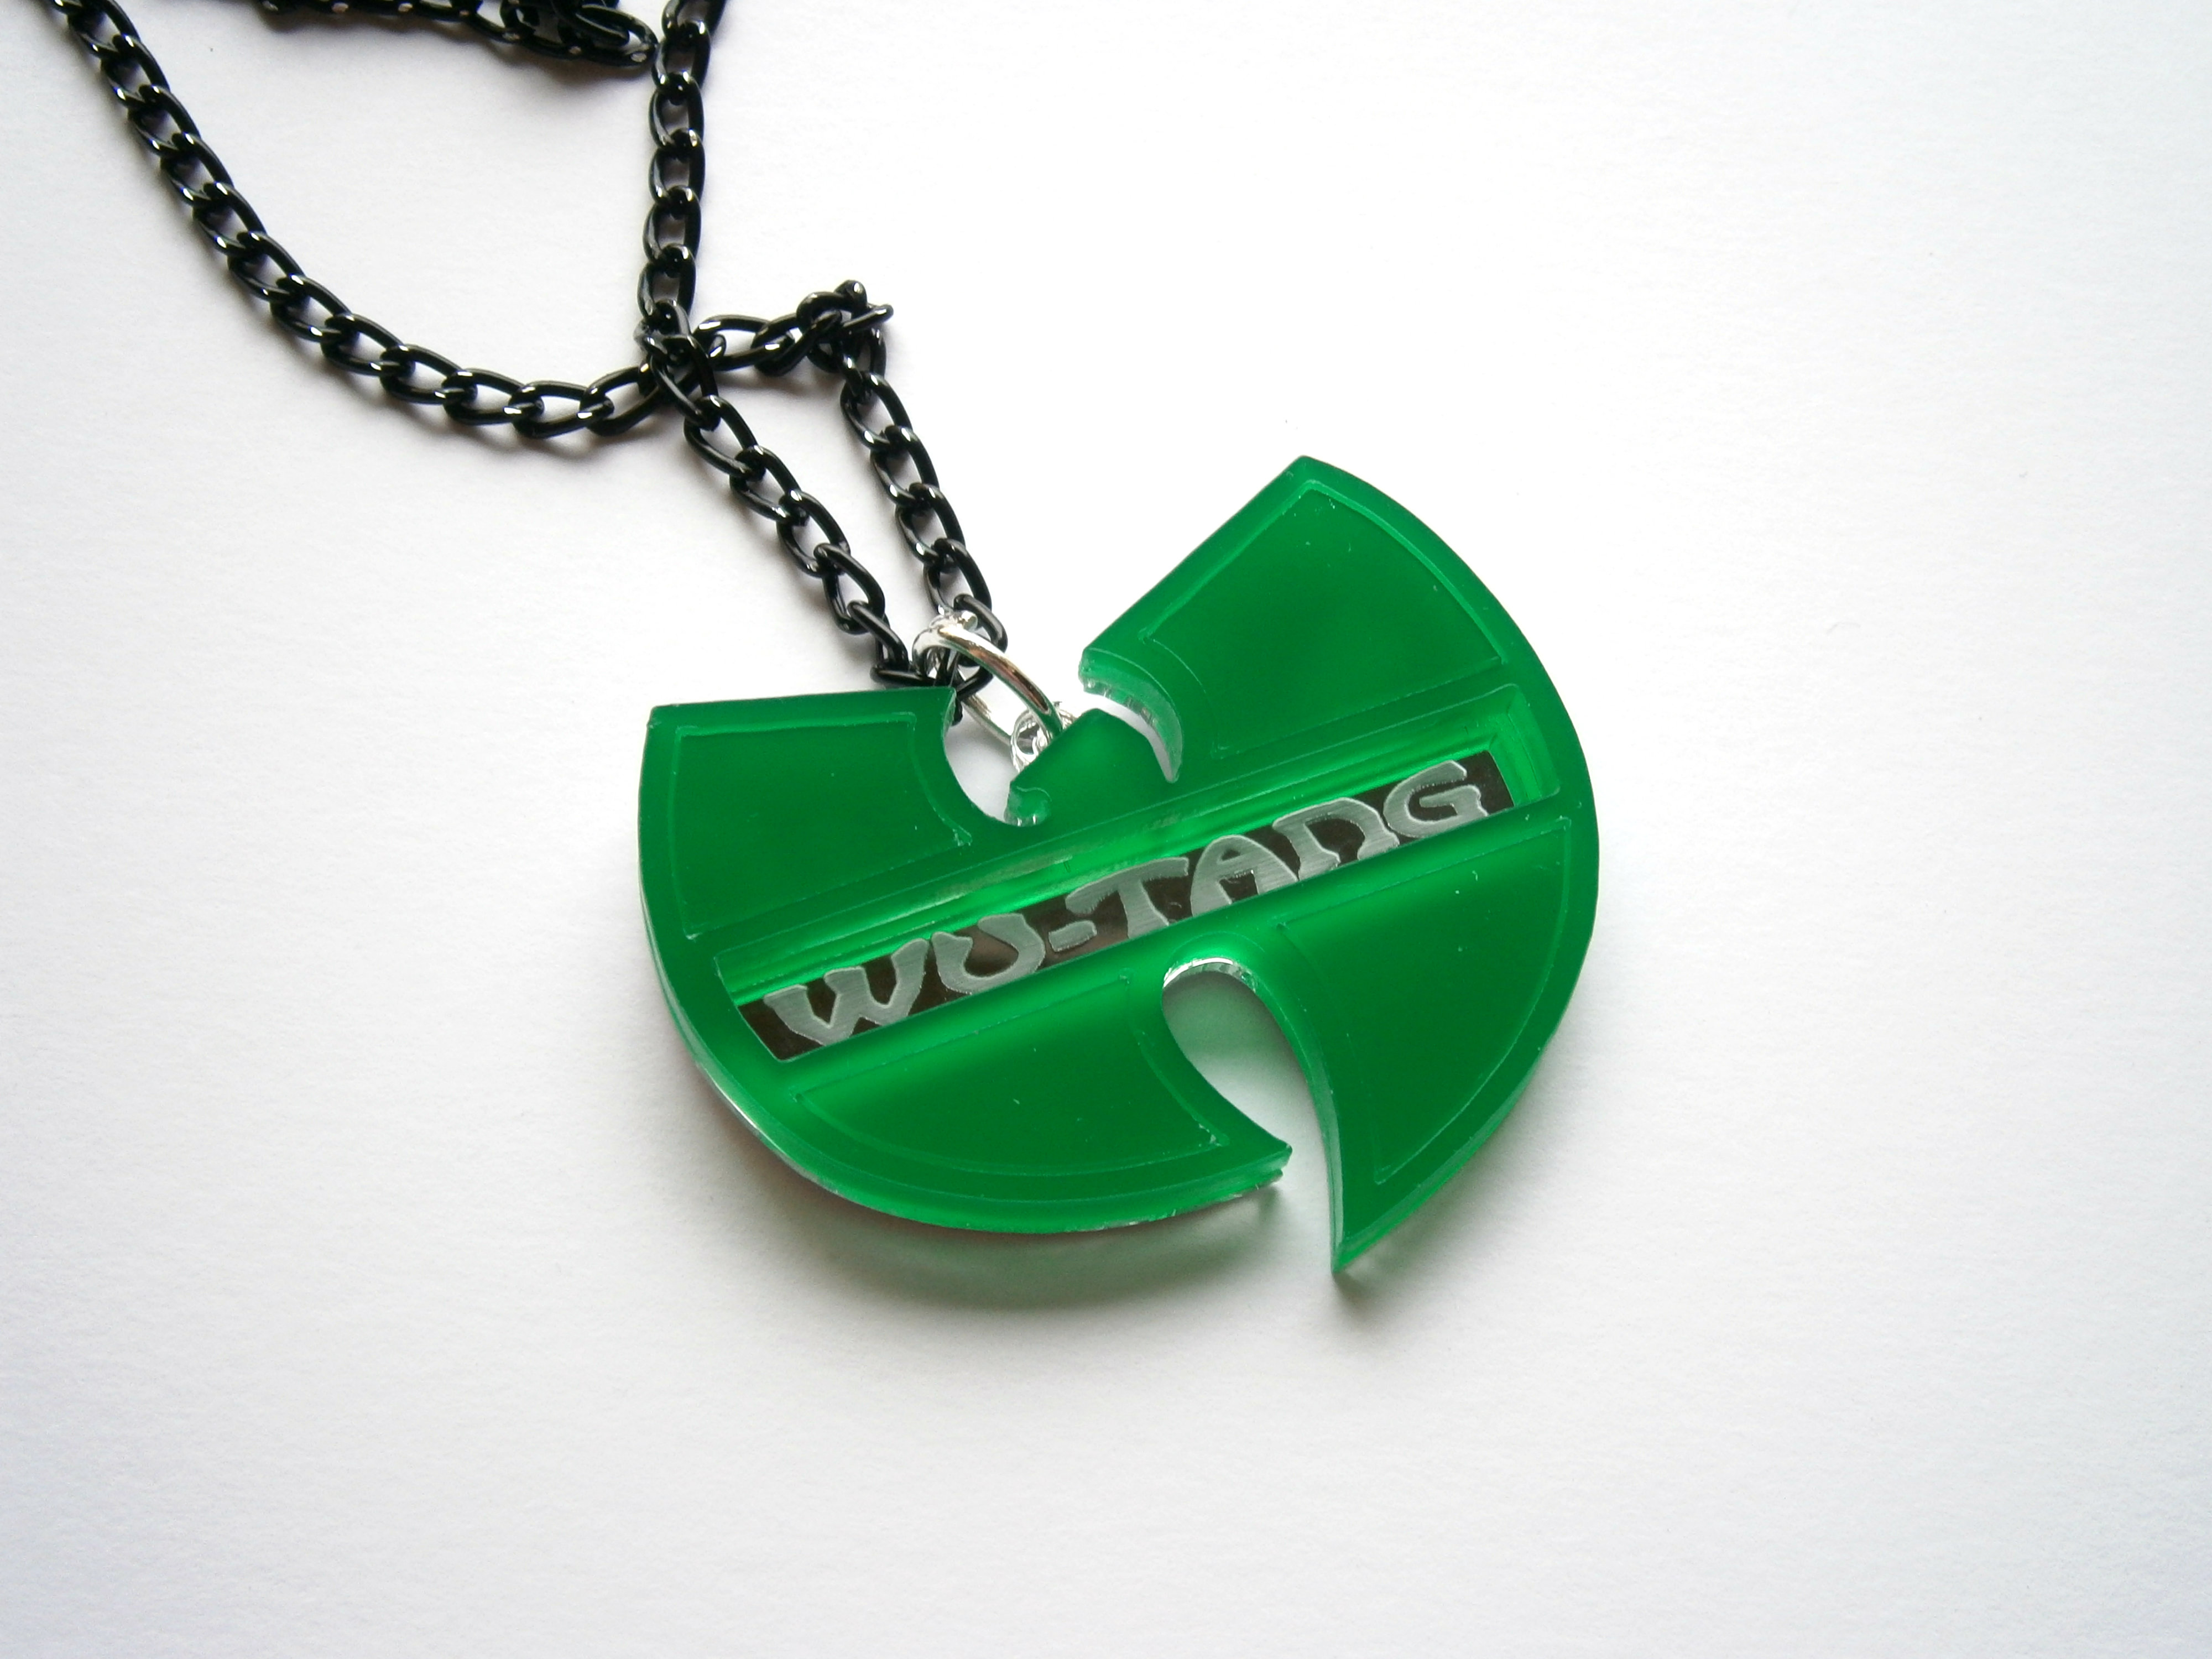 Wu tang pendant laser cut and engraved hip hop necklace aloadofball Images